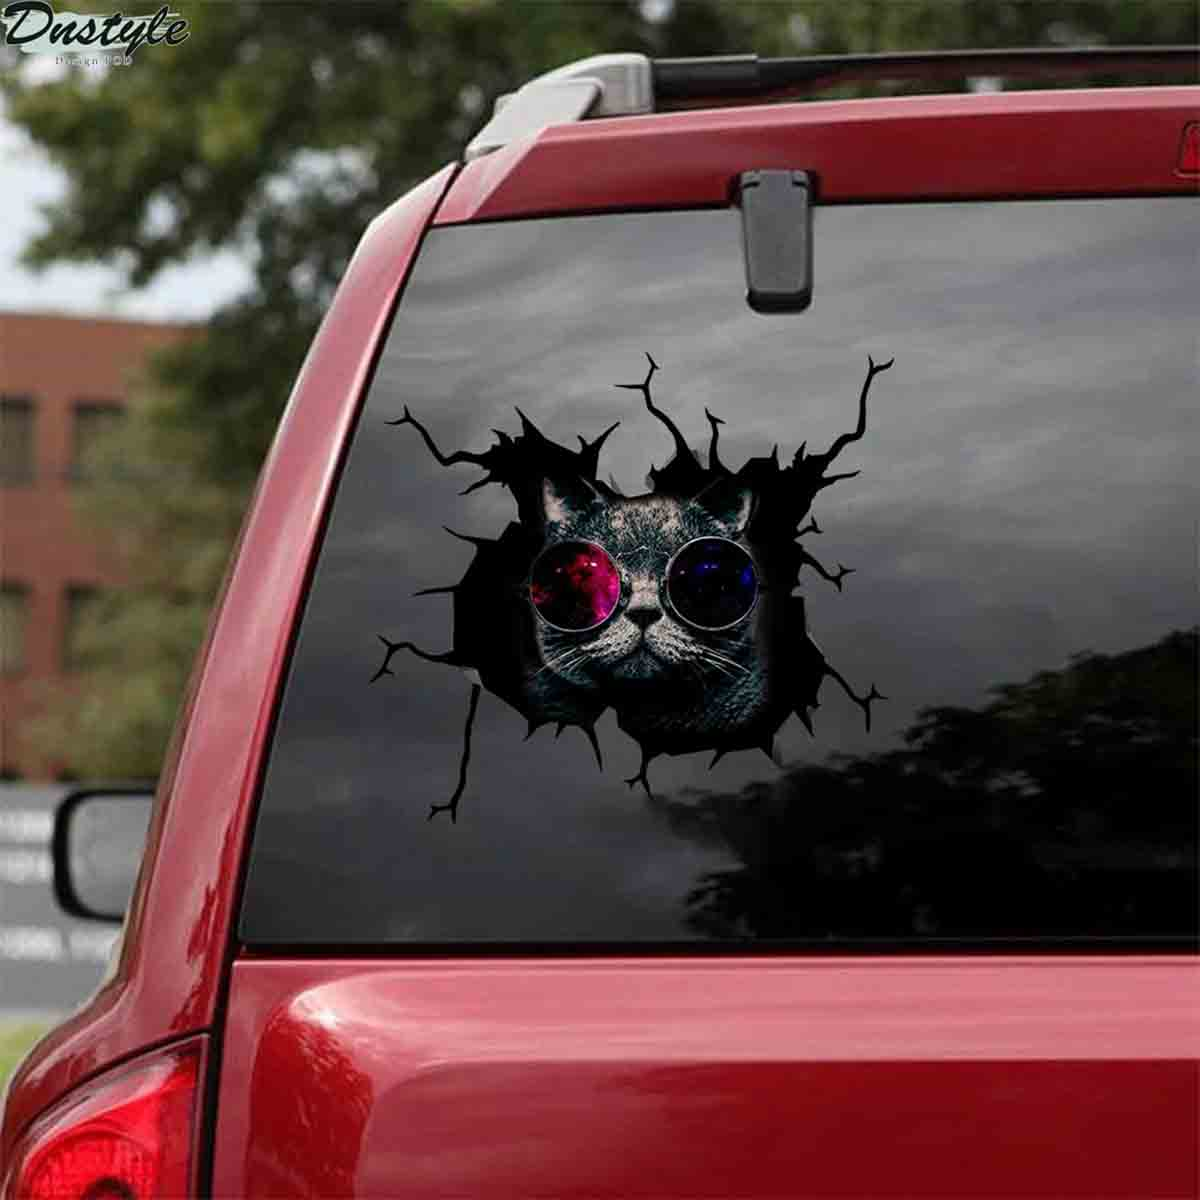 Black cats with glasses car decal sticker 1